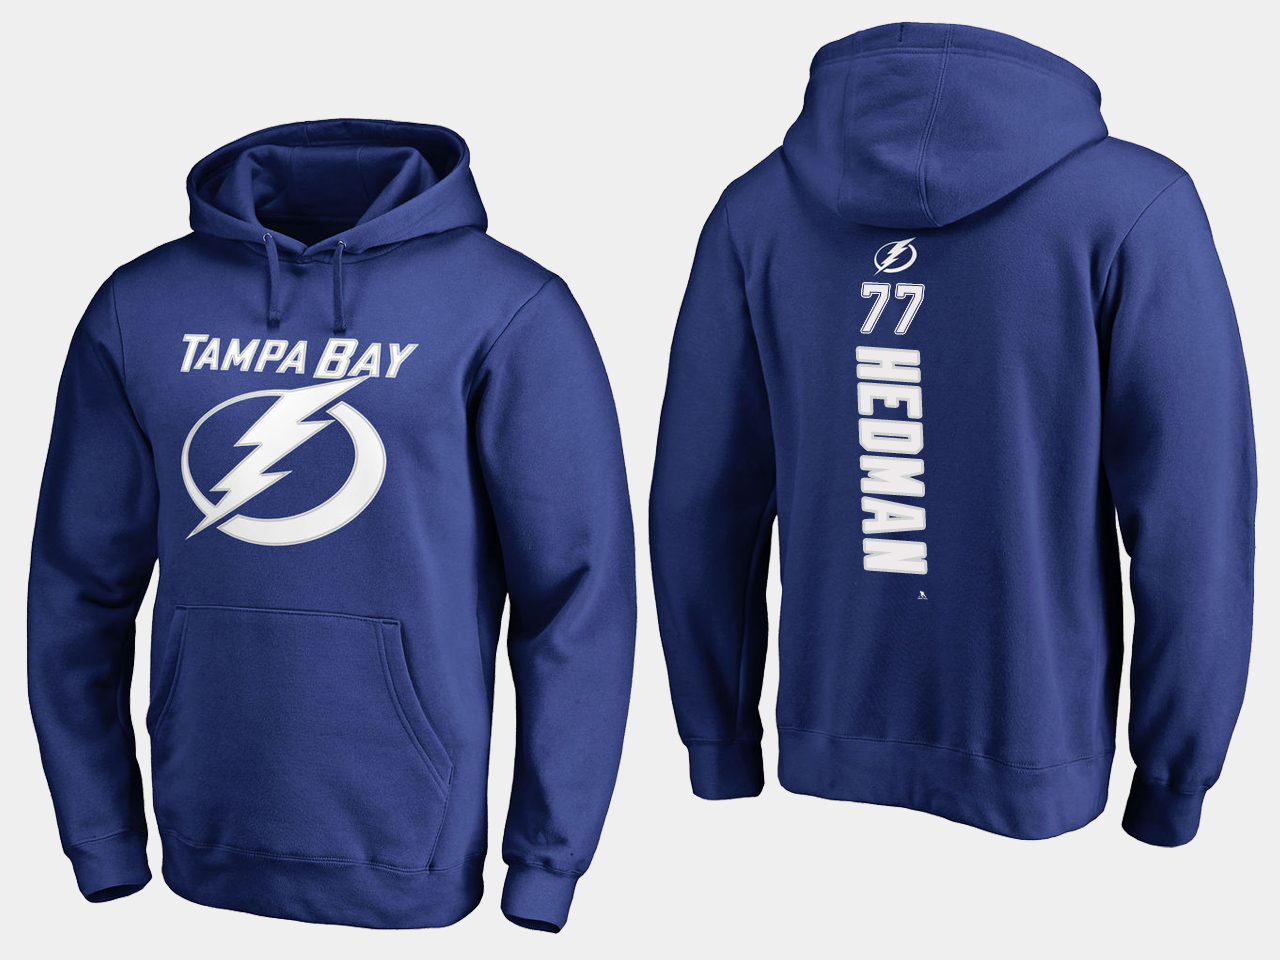 NHL Men adidas Tampa Bay Lightning 77 Hedman blue hoodie